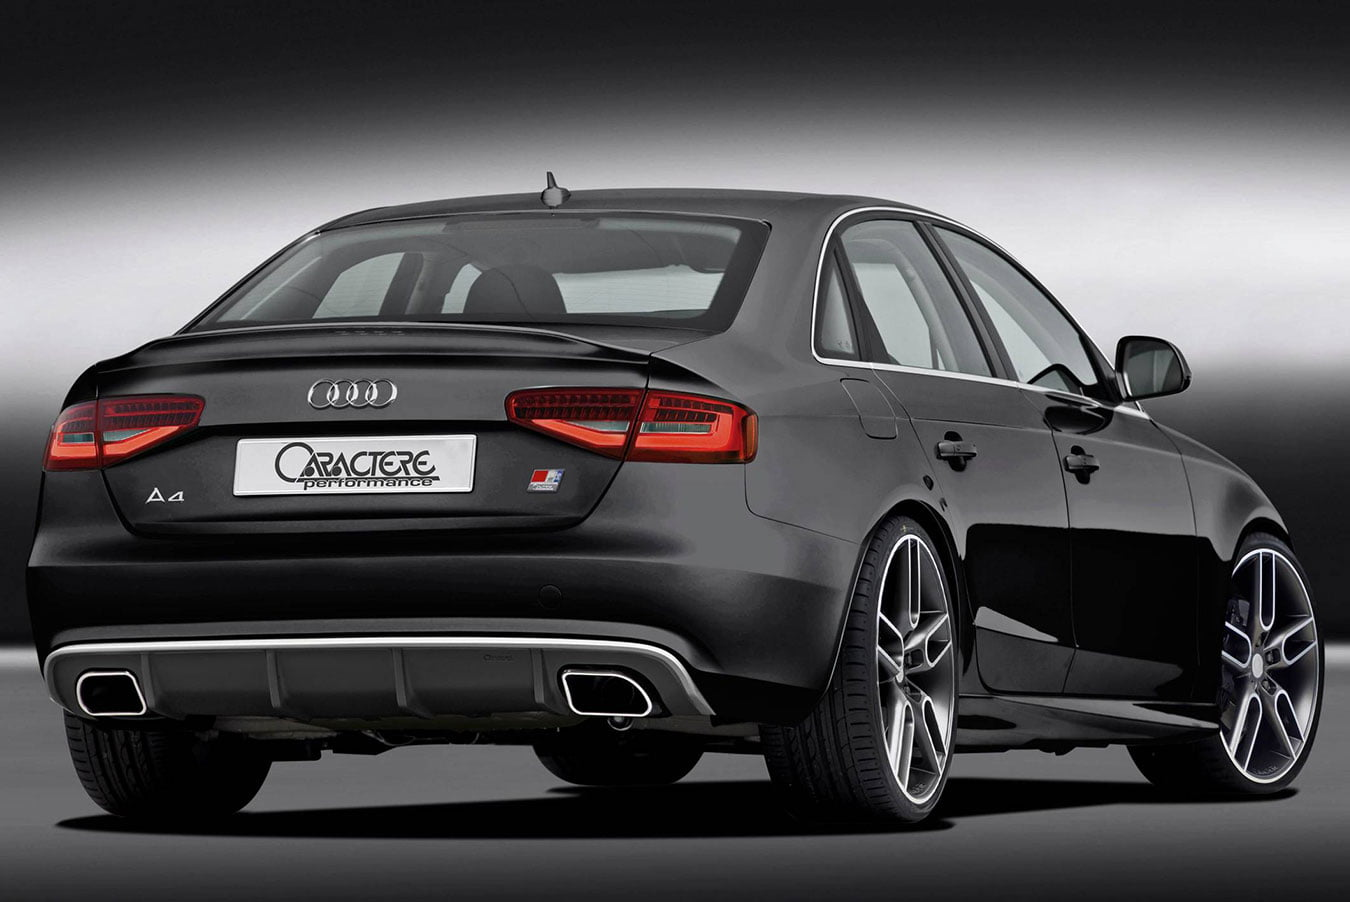 caractere rear diffuser with dual exhaust fits audi a4 b8. Black Bedroom Furniture Sets. Home Design Ideas